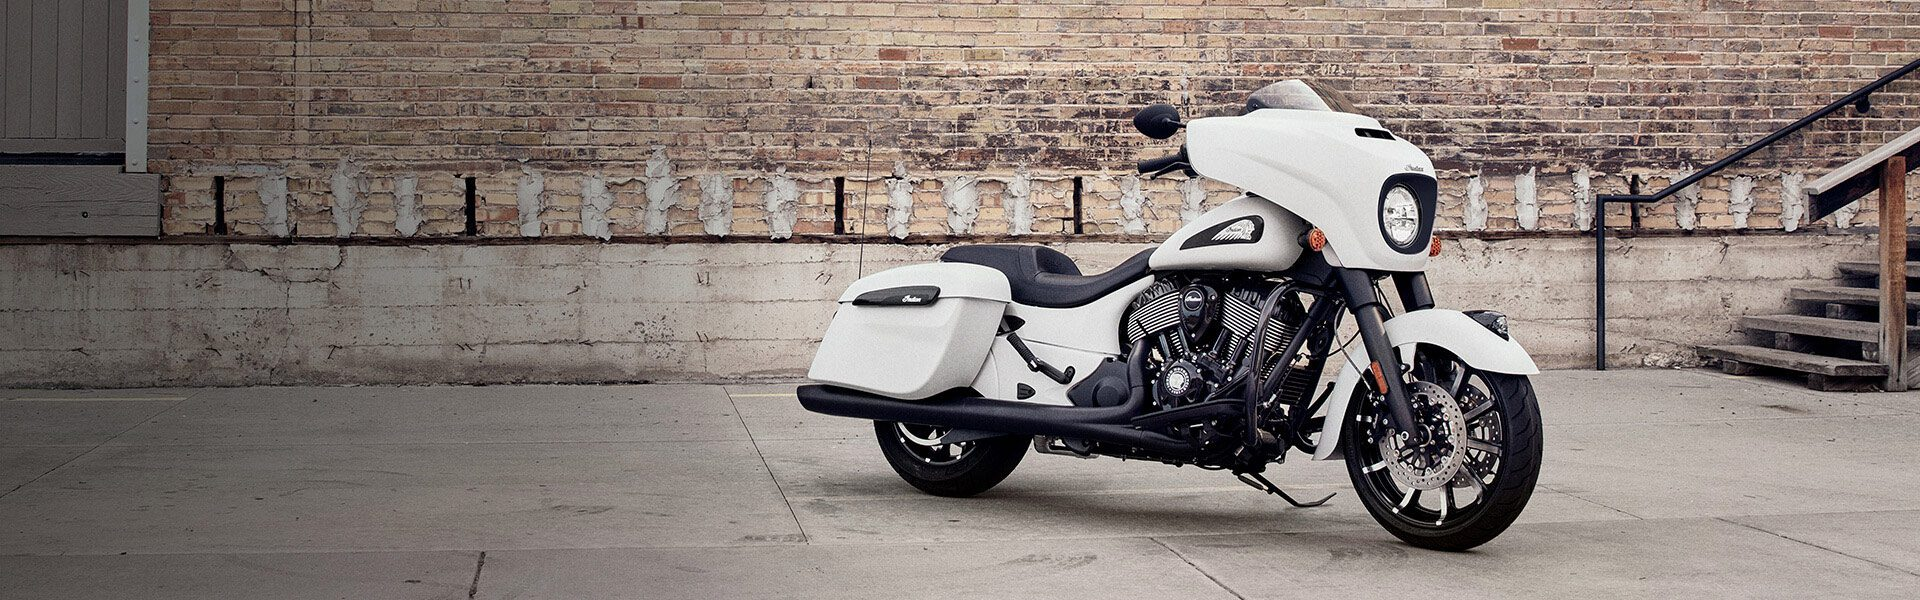 INDIAN® CHIEFTAIN® DARK HORSE®